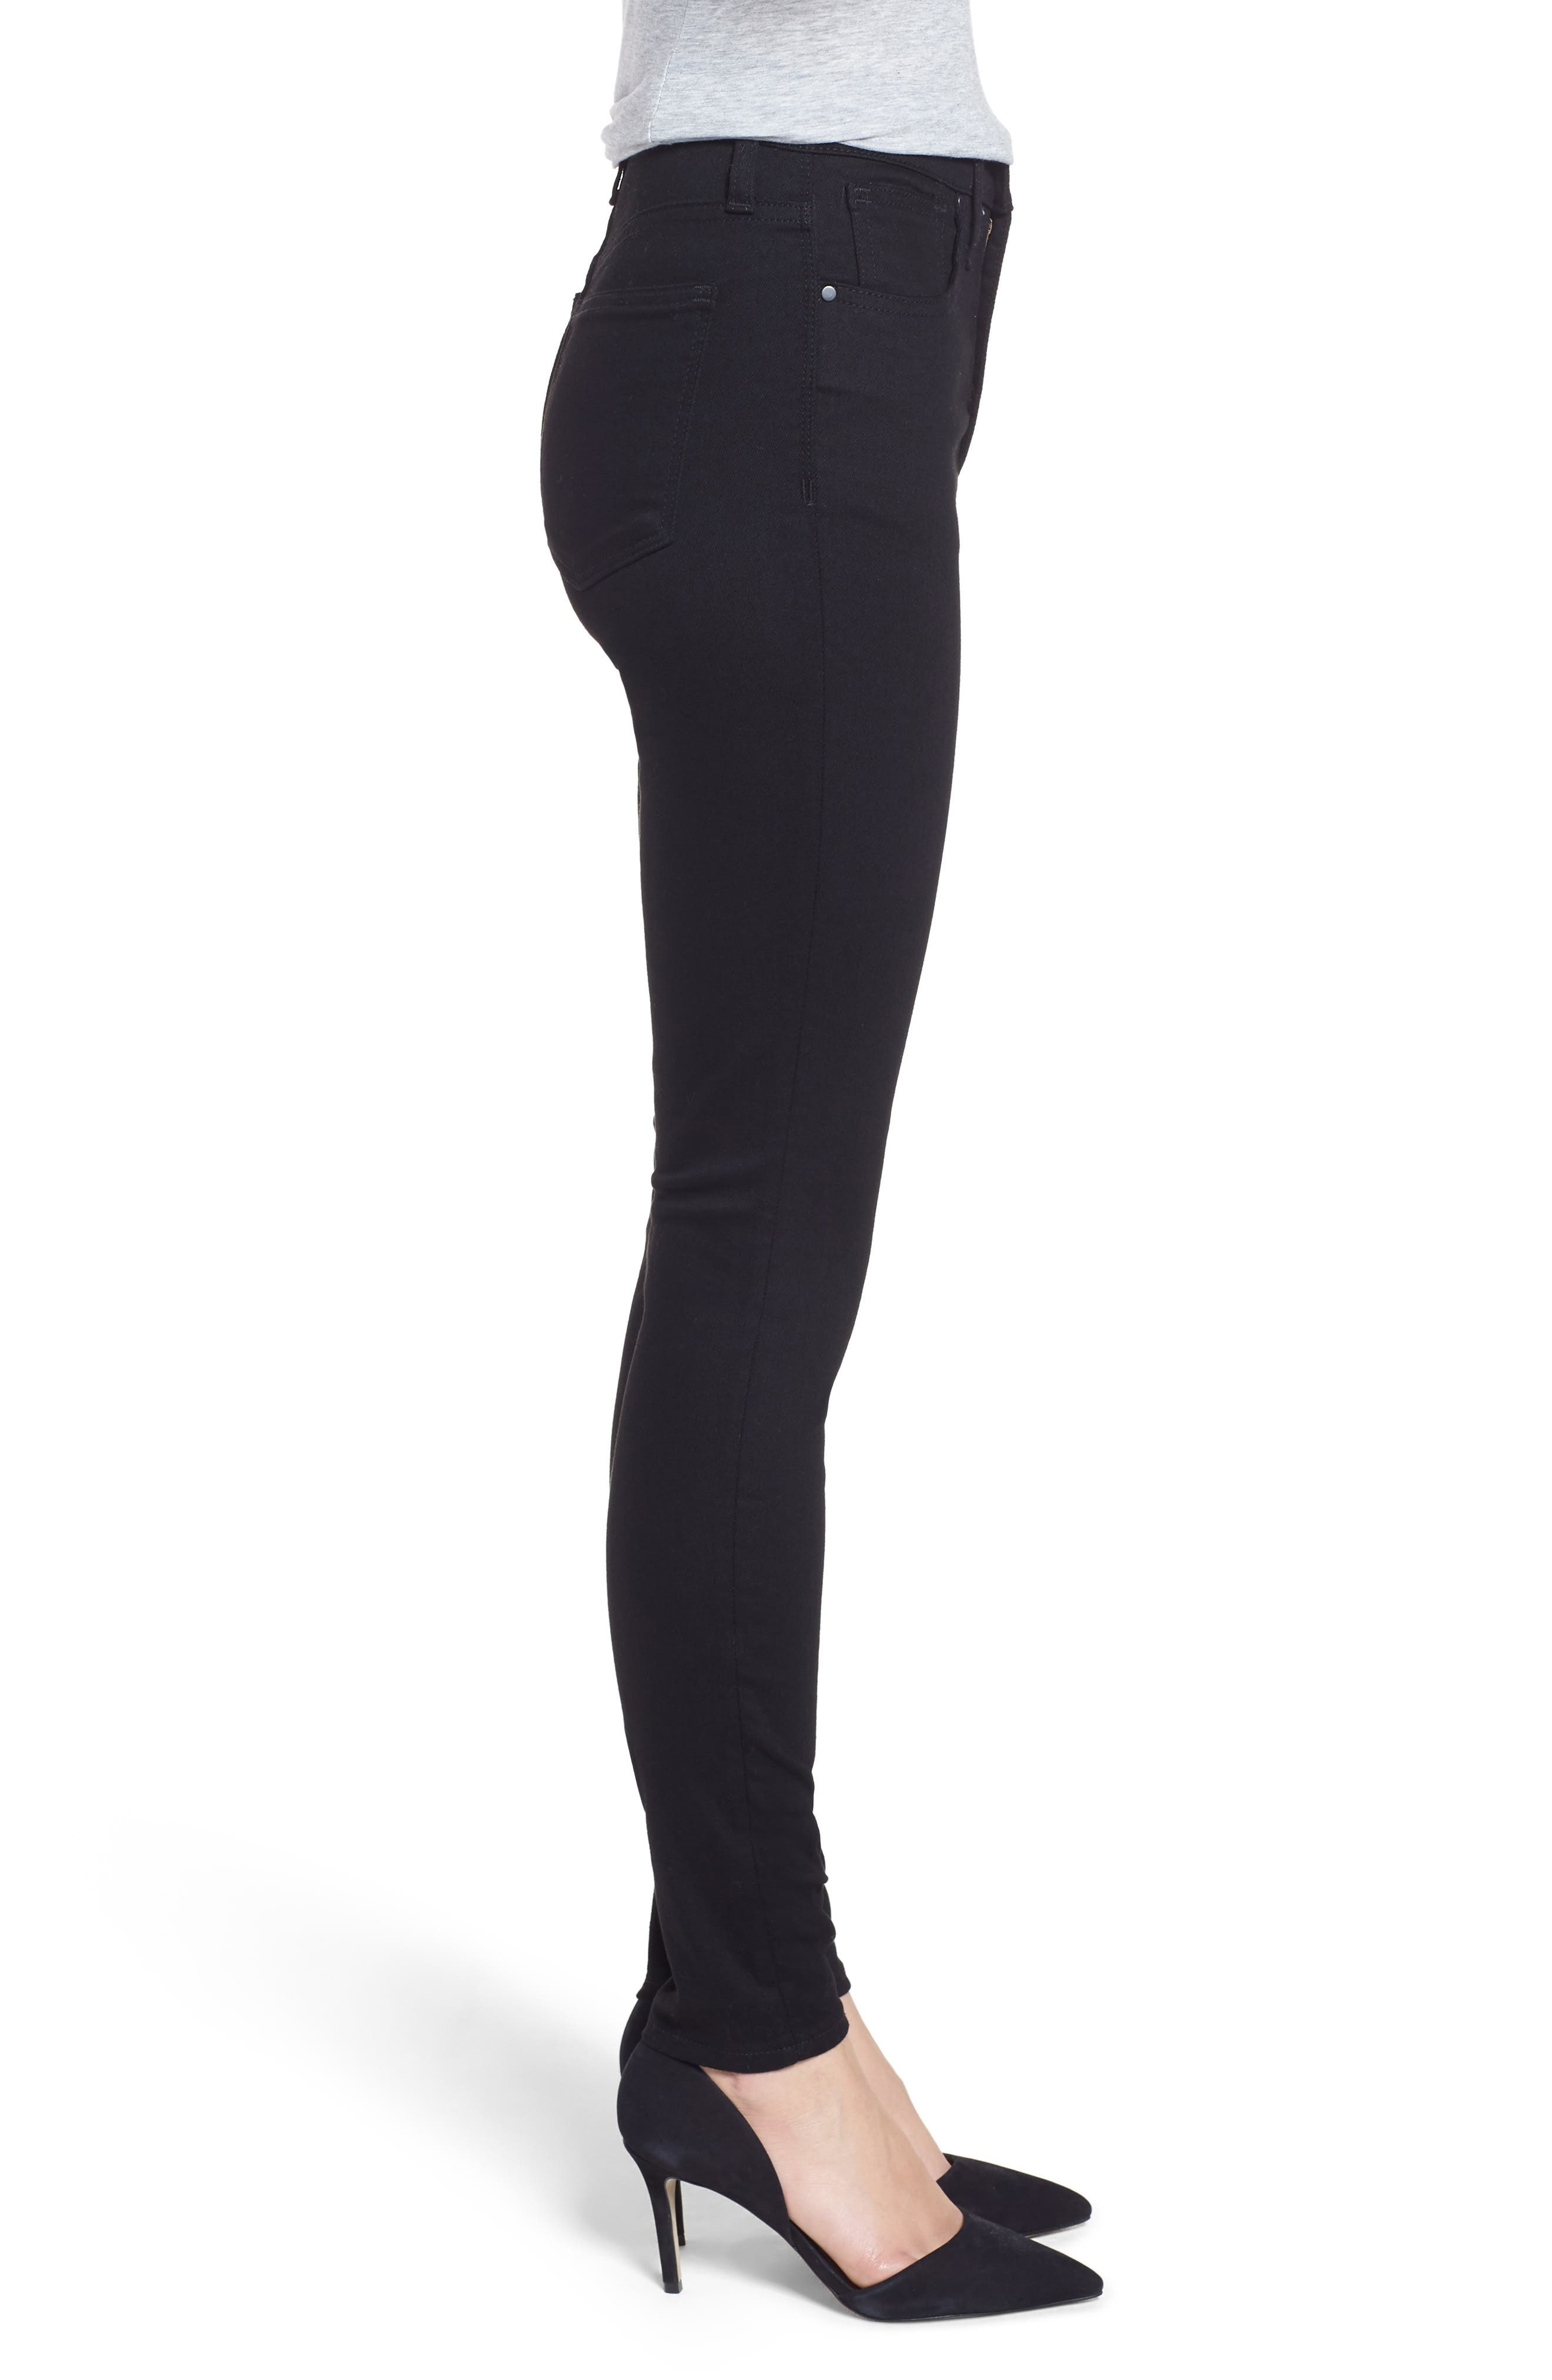 Sierra High Waist Skinny Jeans,                             Alternate thumbnail 3, color,                             CLEAN BLACK